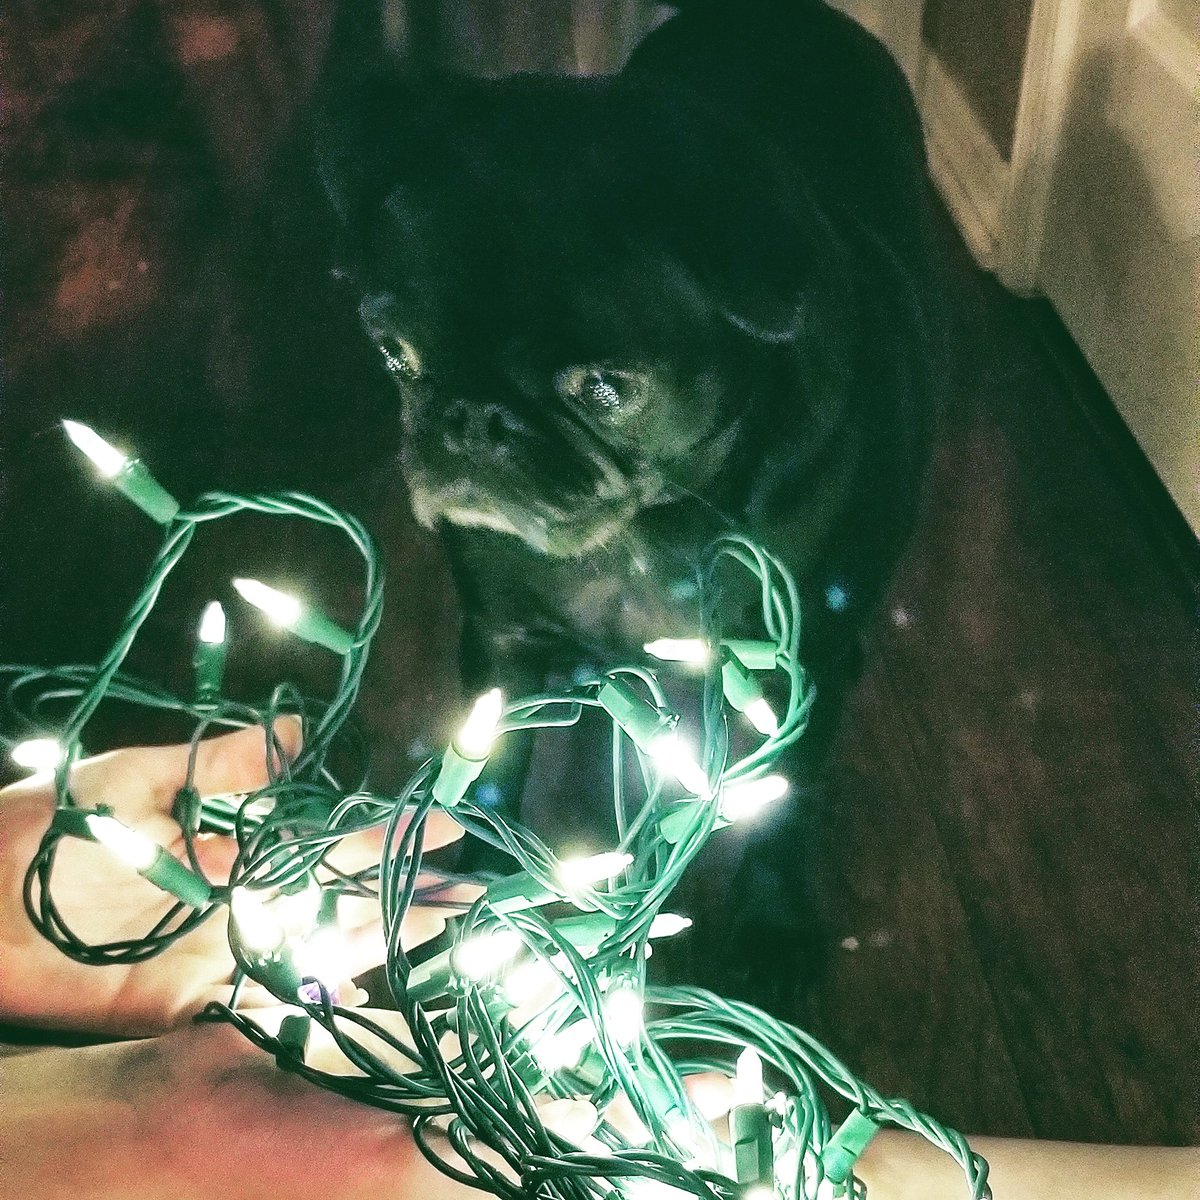 Me is mesmerized by the twinkles!!!   #pug #pugs #dogsoftwitter #dog #dogs #strangerthings #Christmas #MondayNightMiracle #Christmas2019<br>http://pic.twitter.com/LkHCpGIcBa